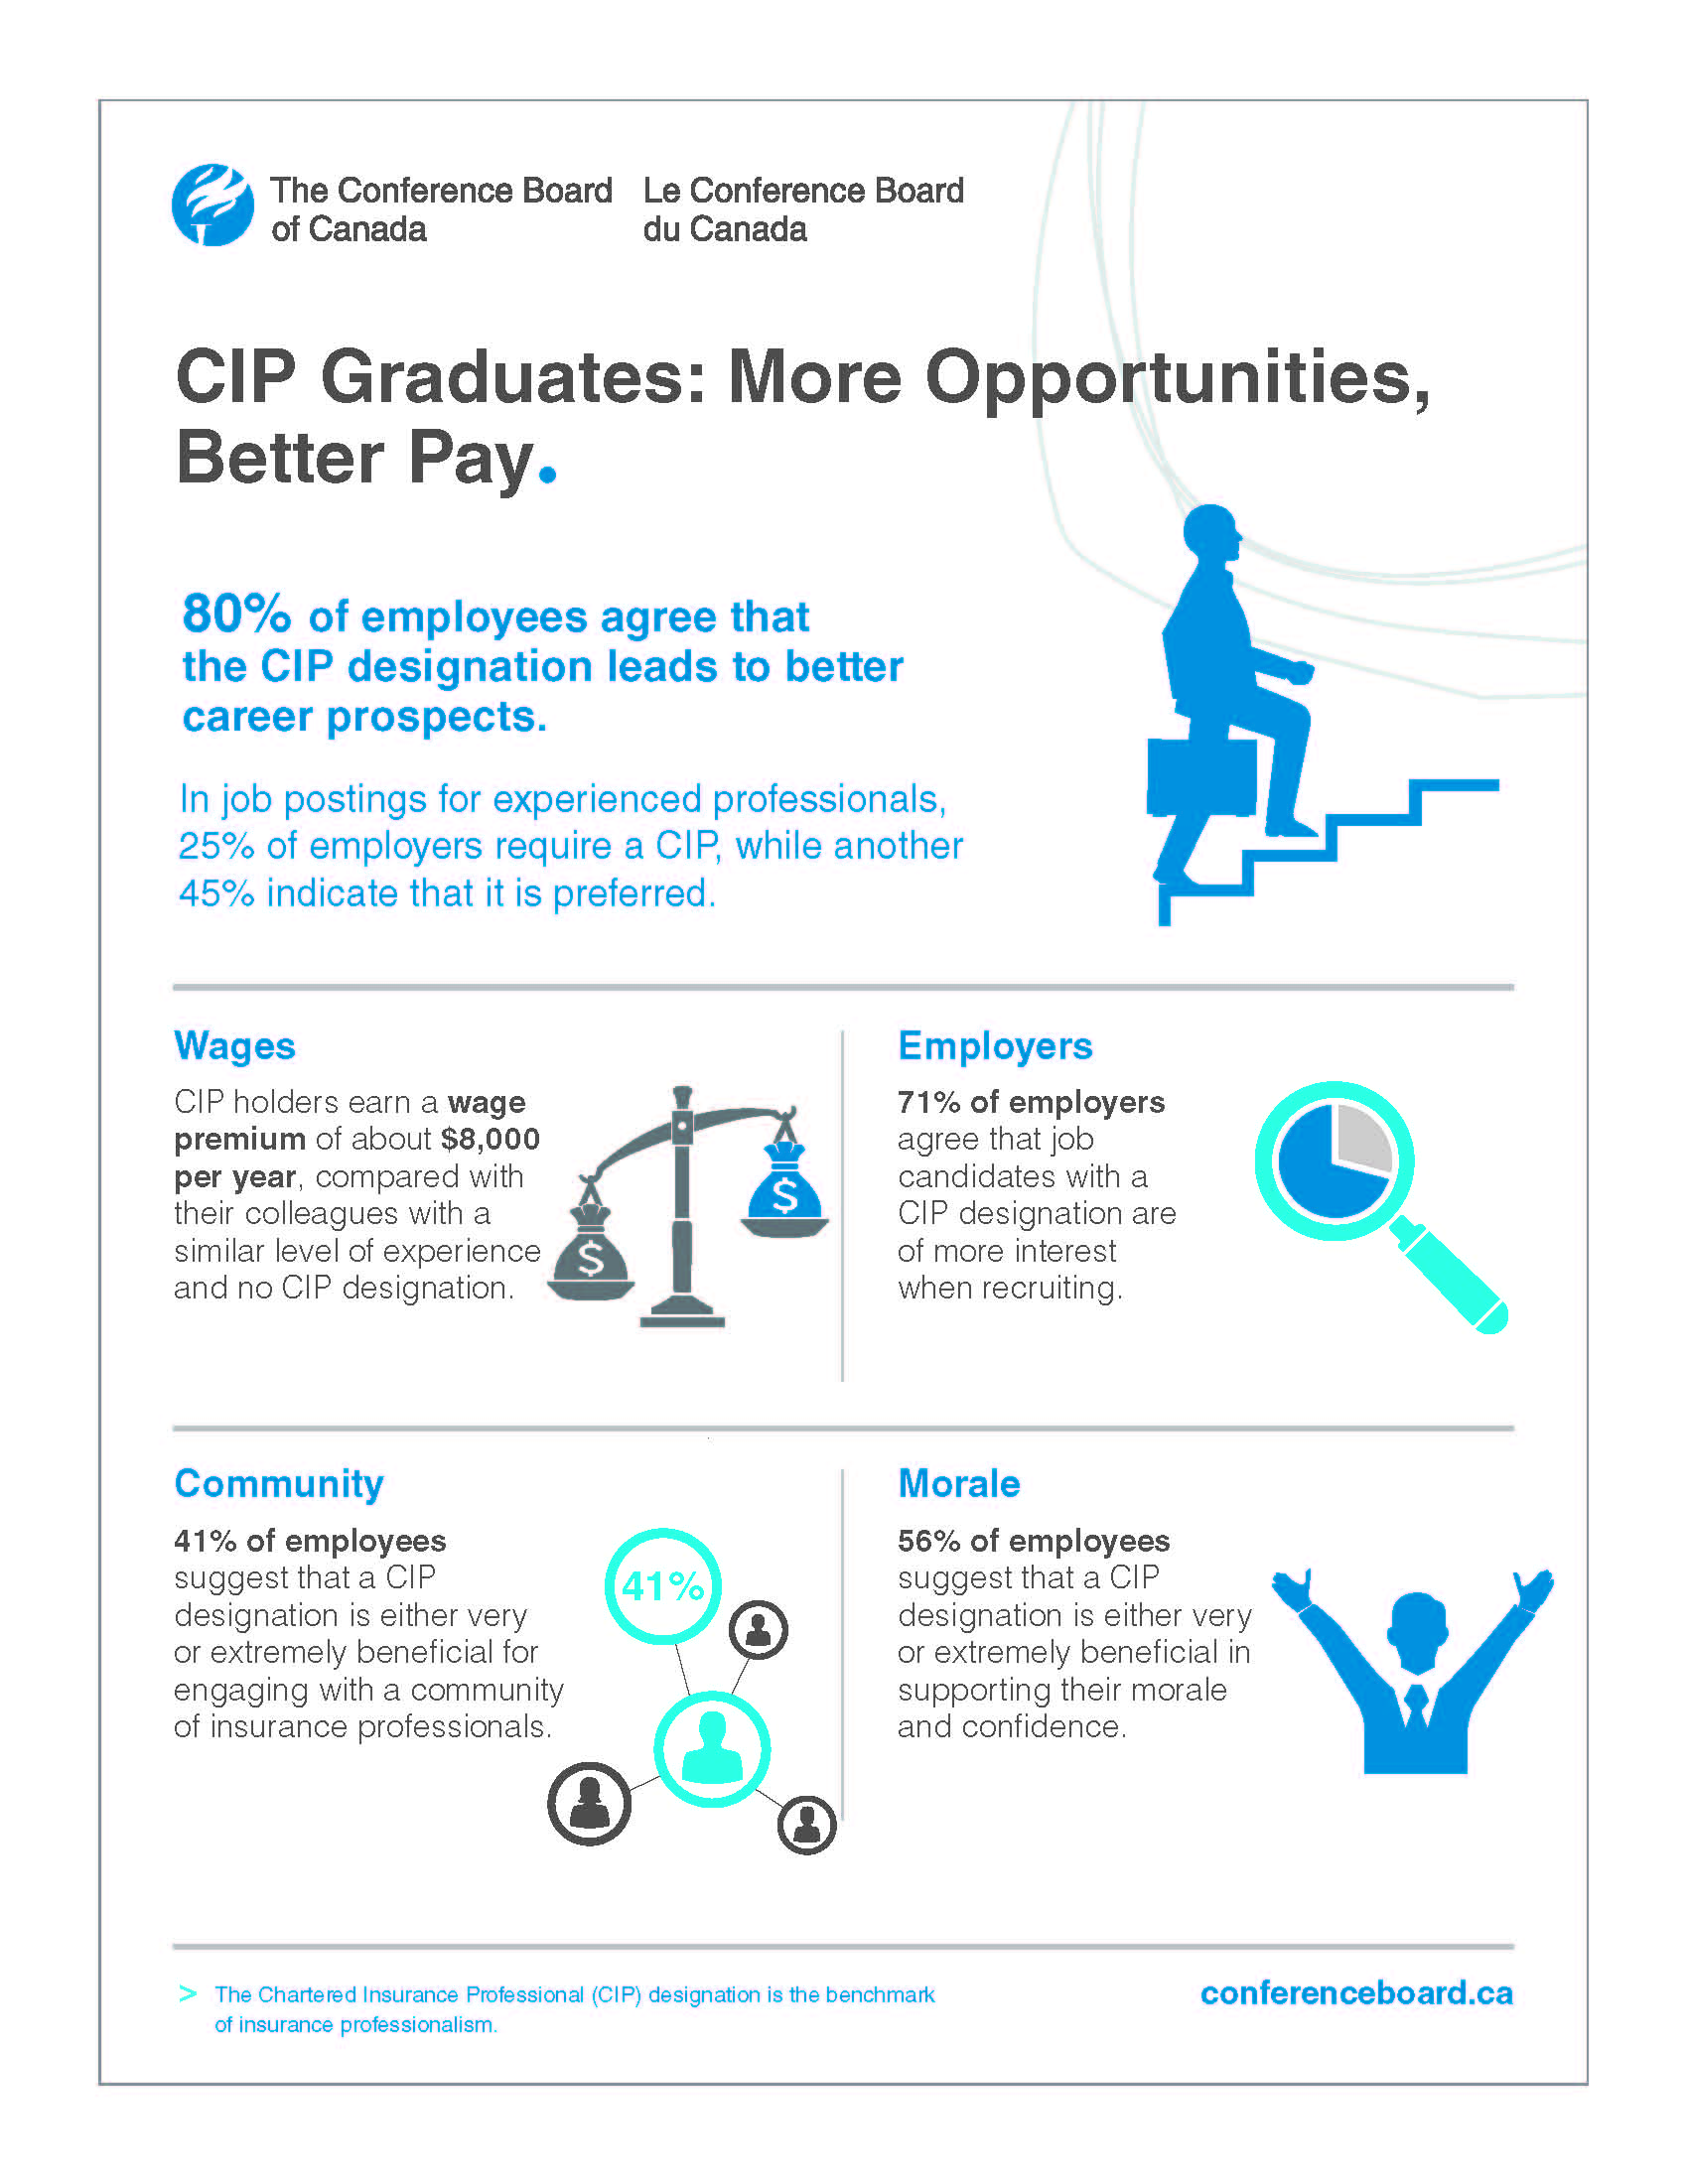 Image links to CIP Graduates page